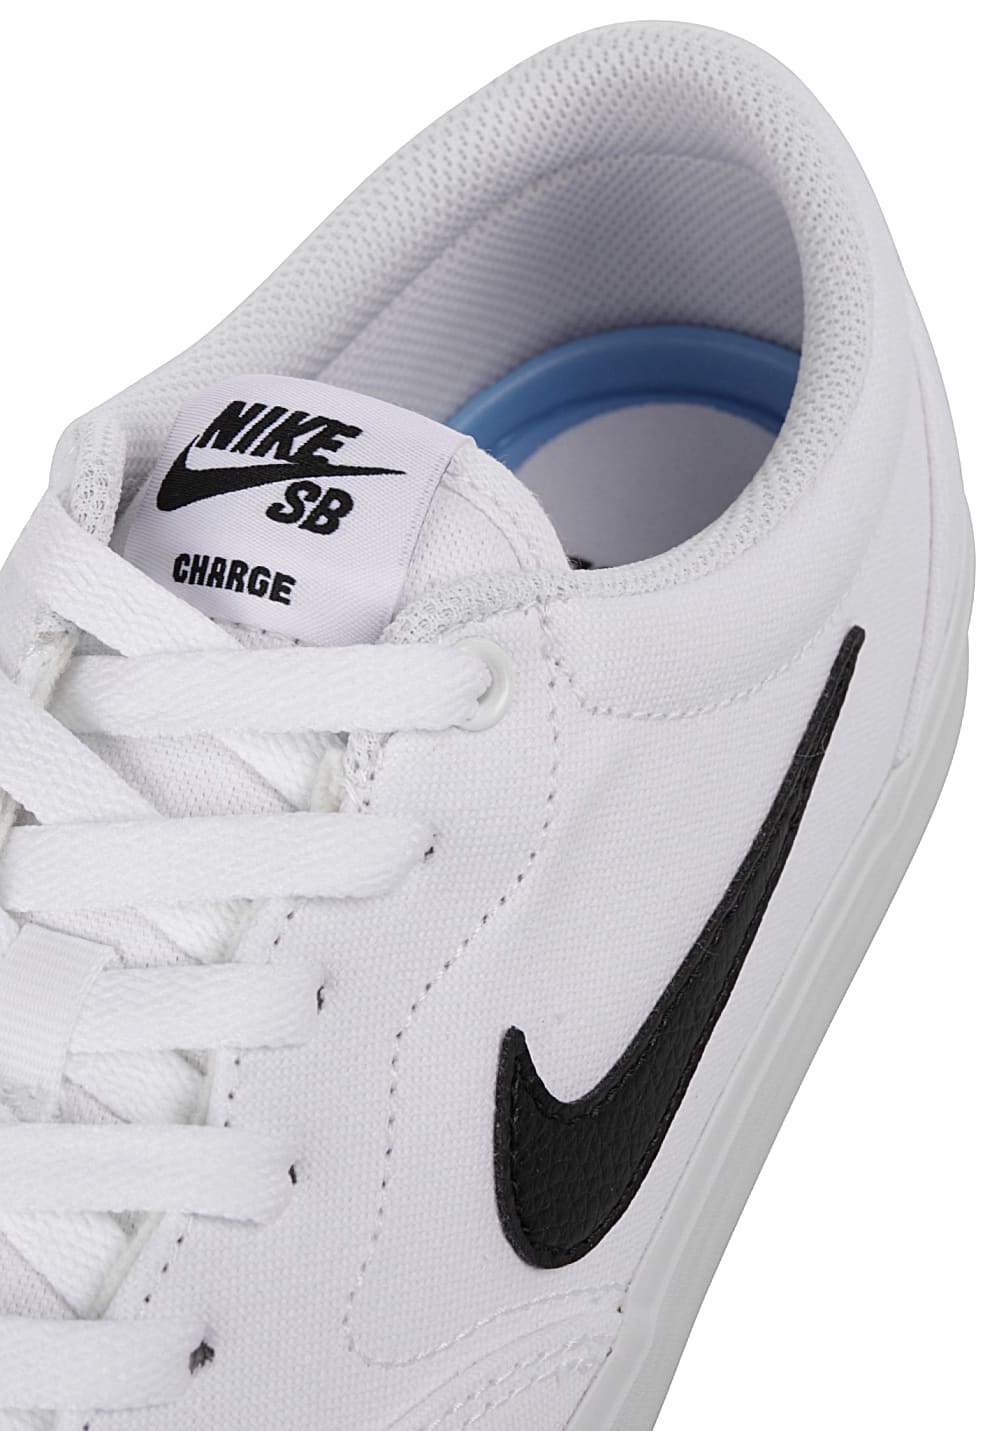 ffd9571f7969 NIKE SB Charge Cnvs - Sneakers for Men - White - Planet Sports